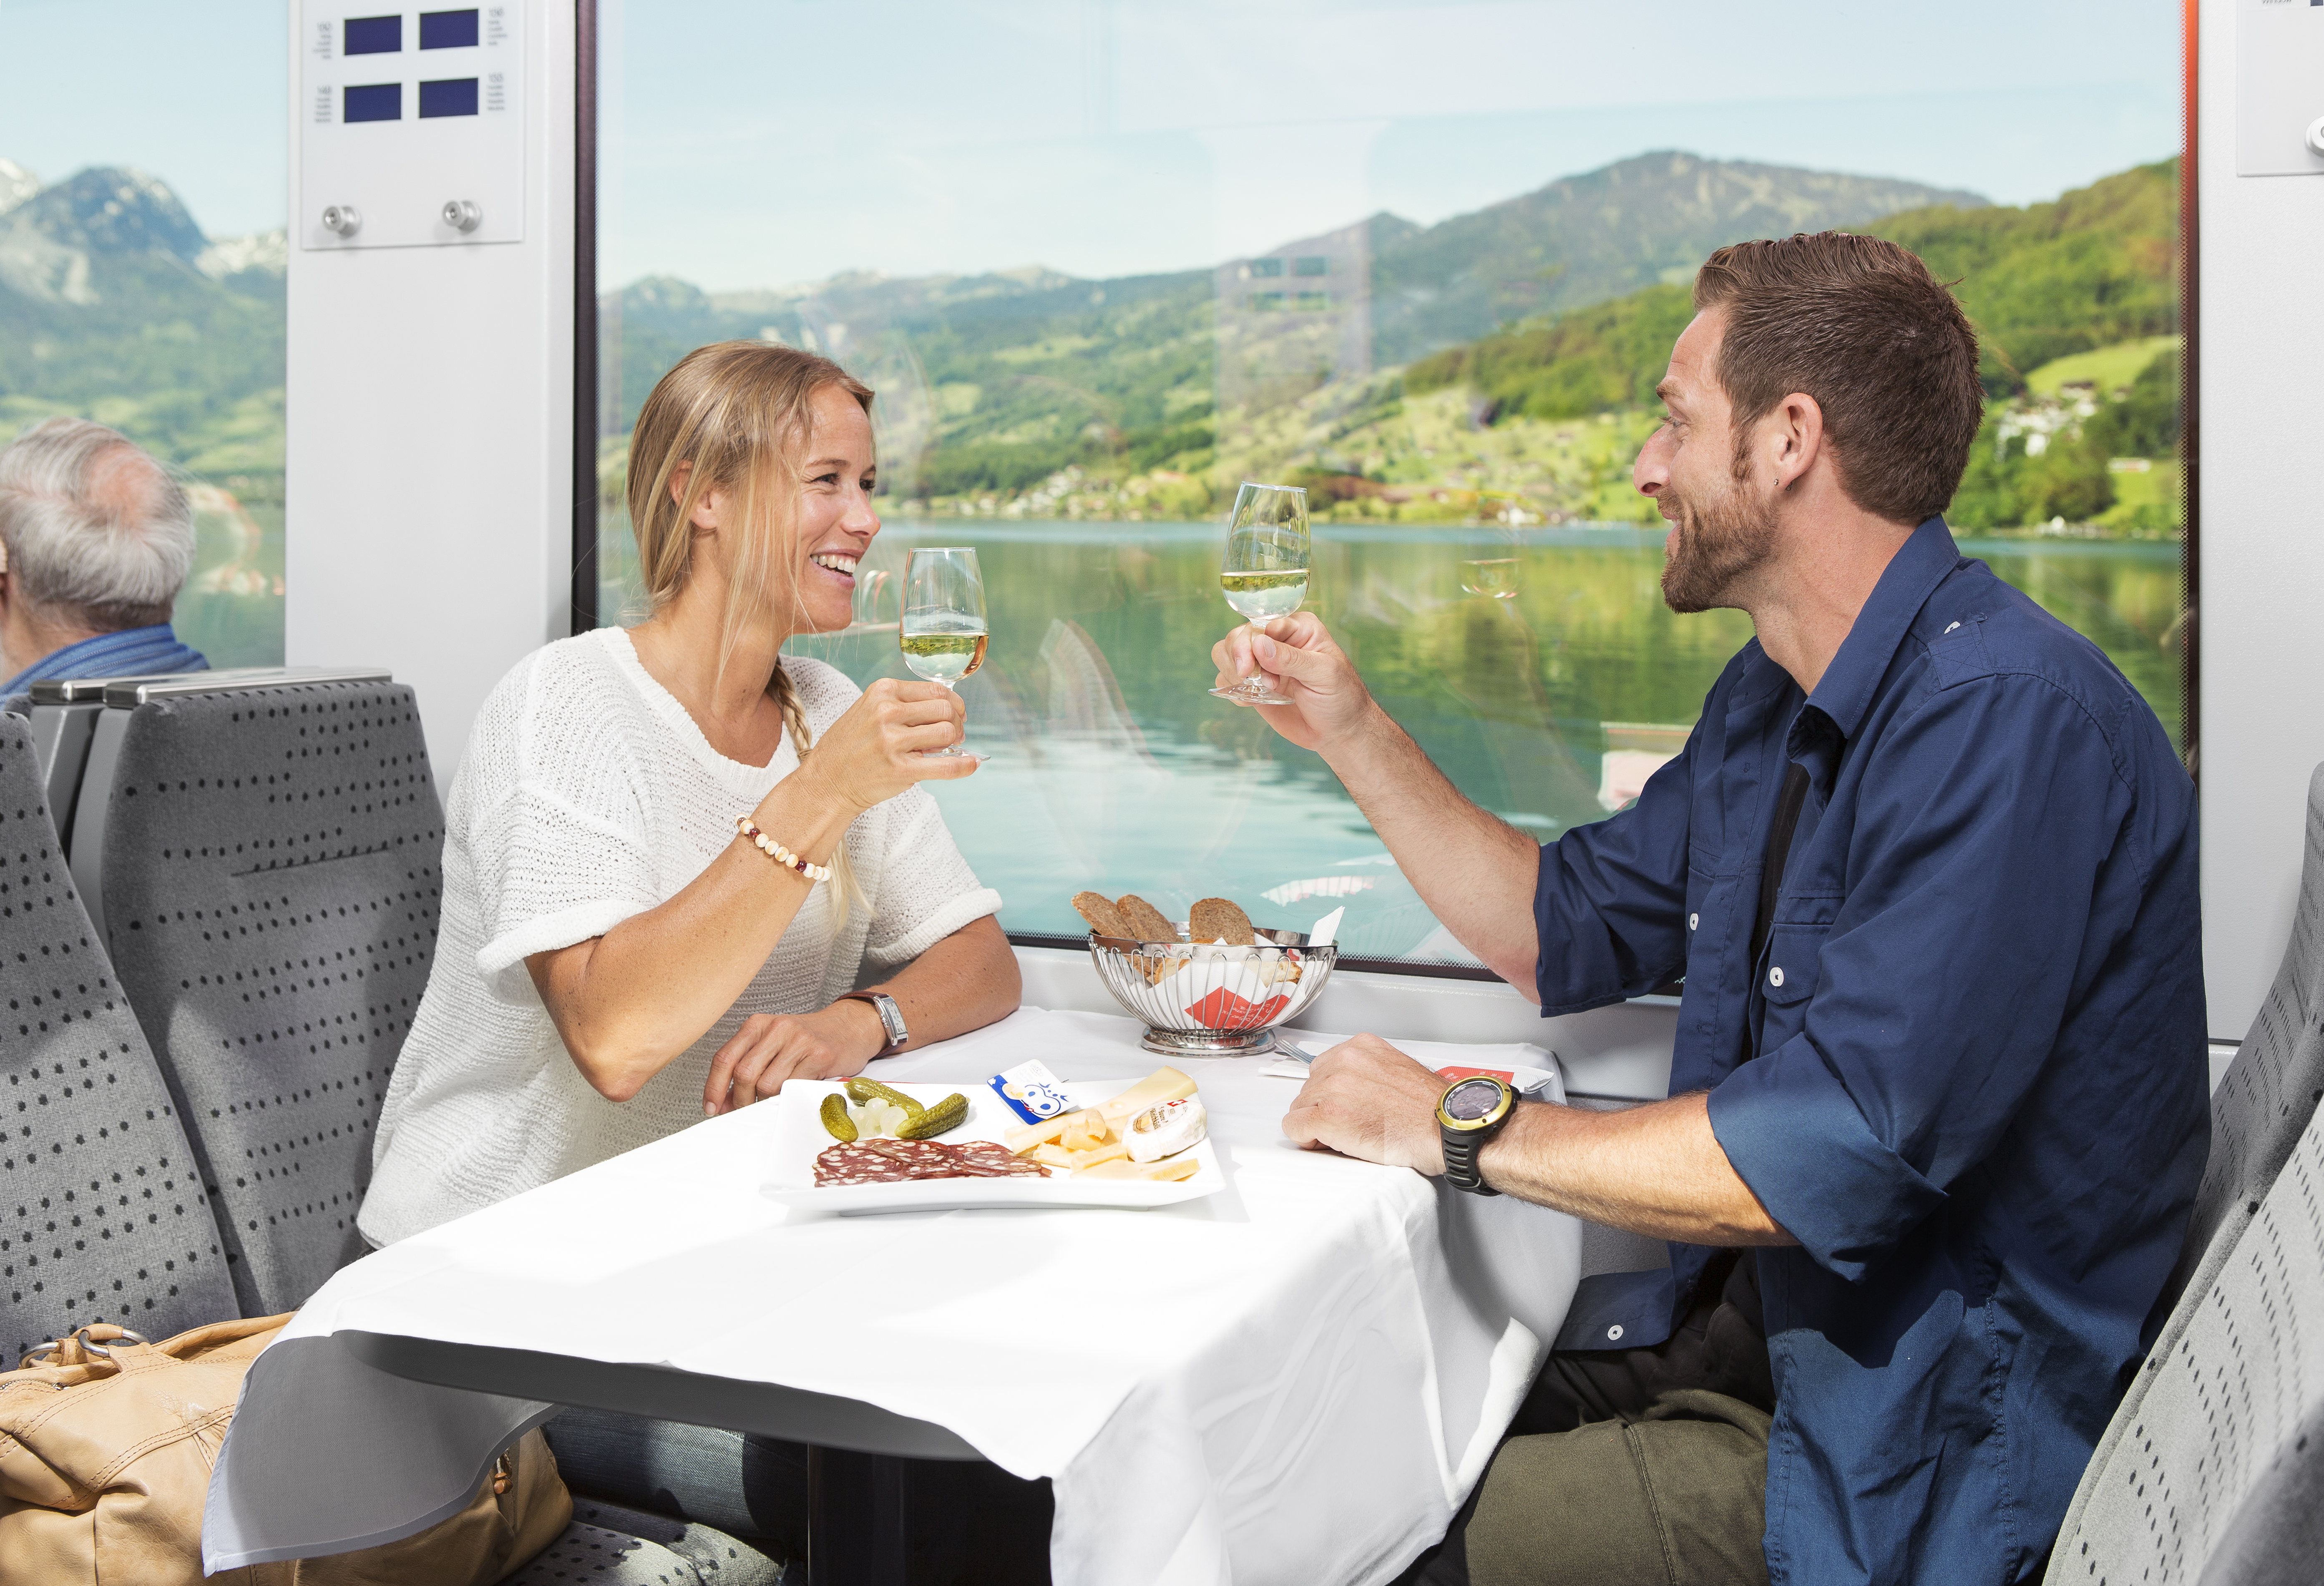 Bistro Luzern-Interlaken Express